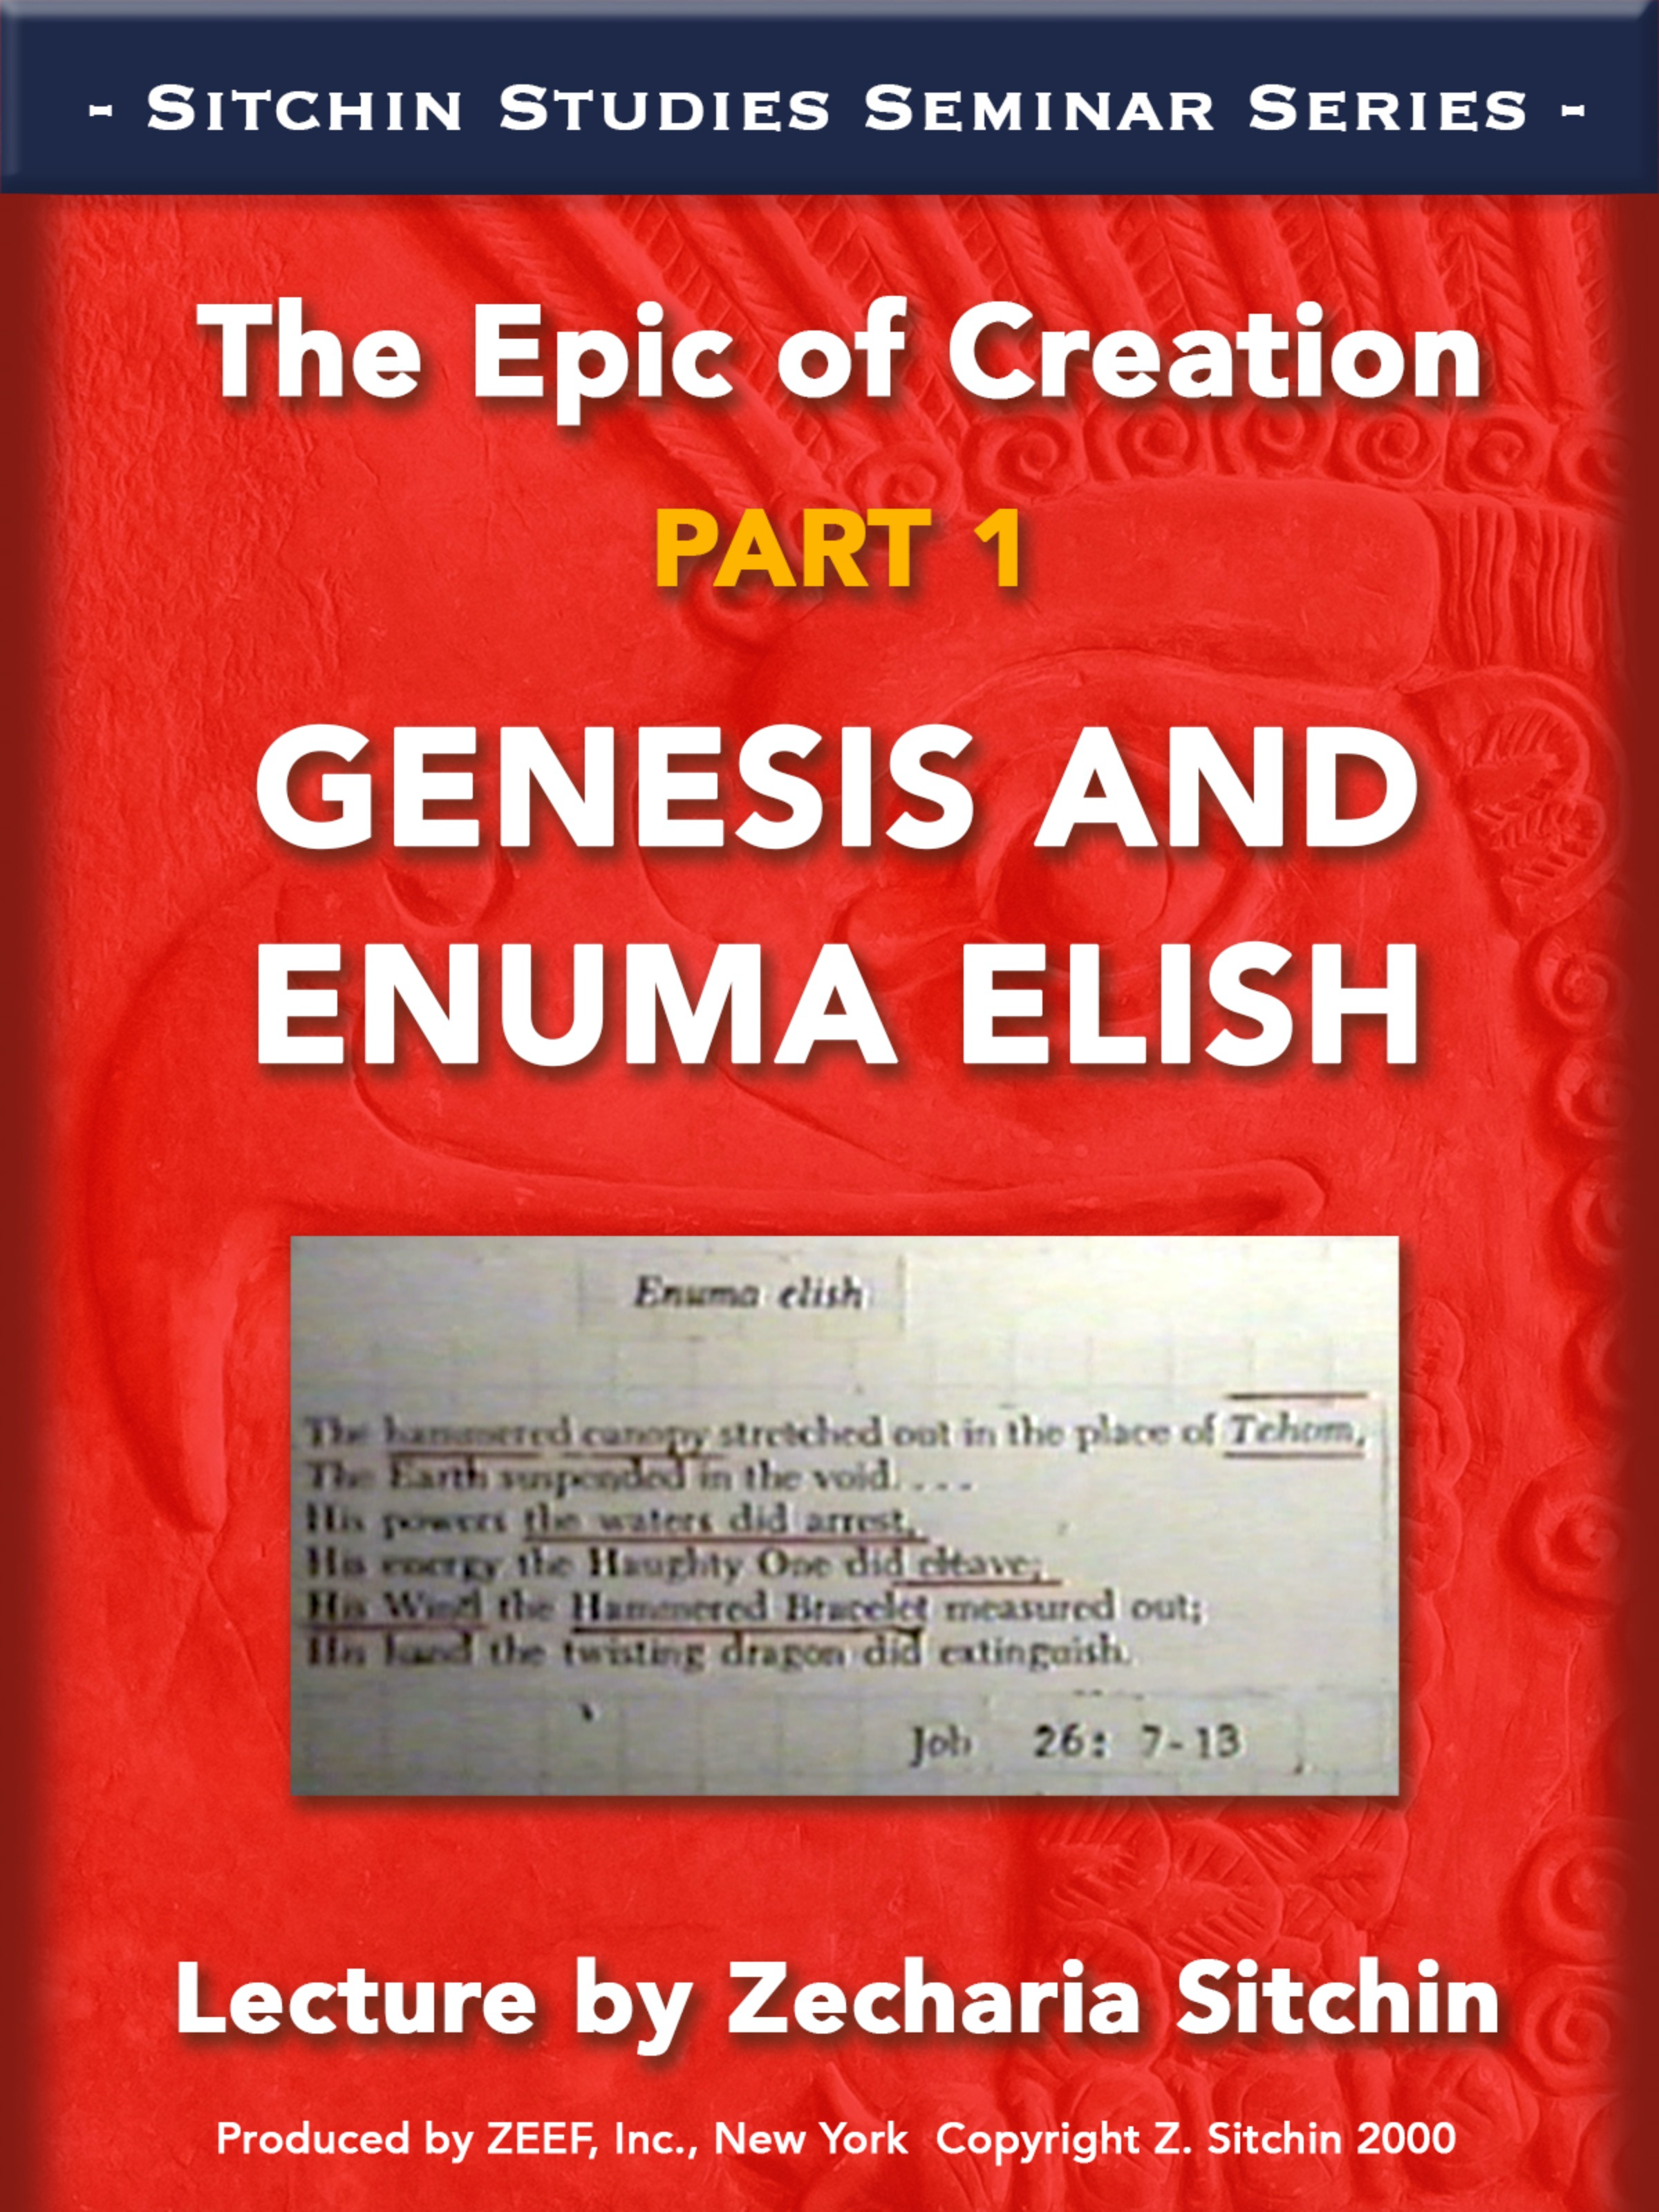 The Epic of Creation - Part 1 of 2